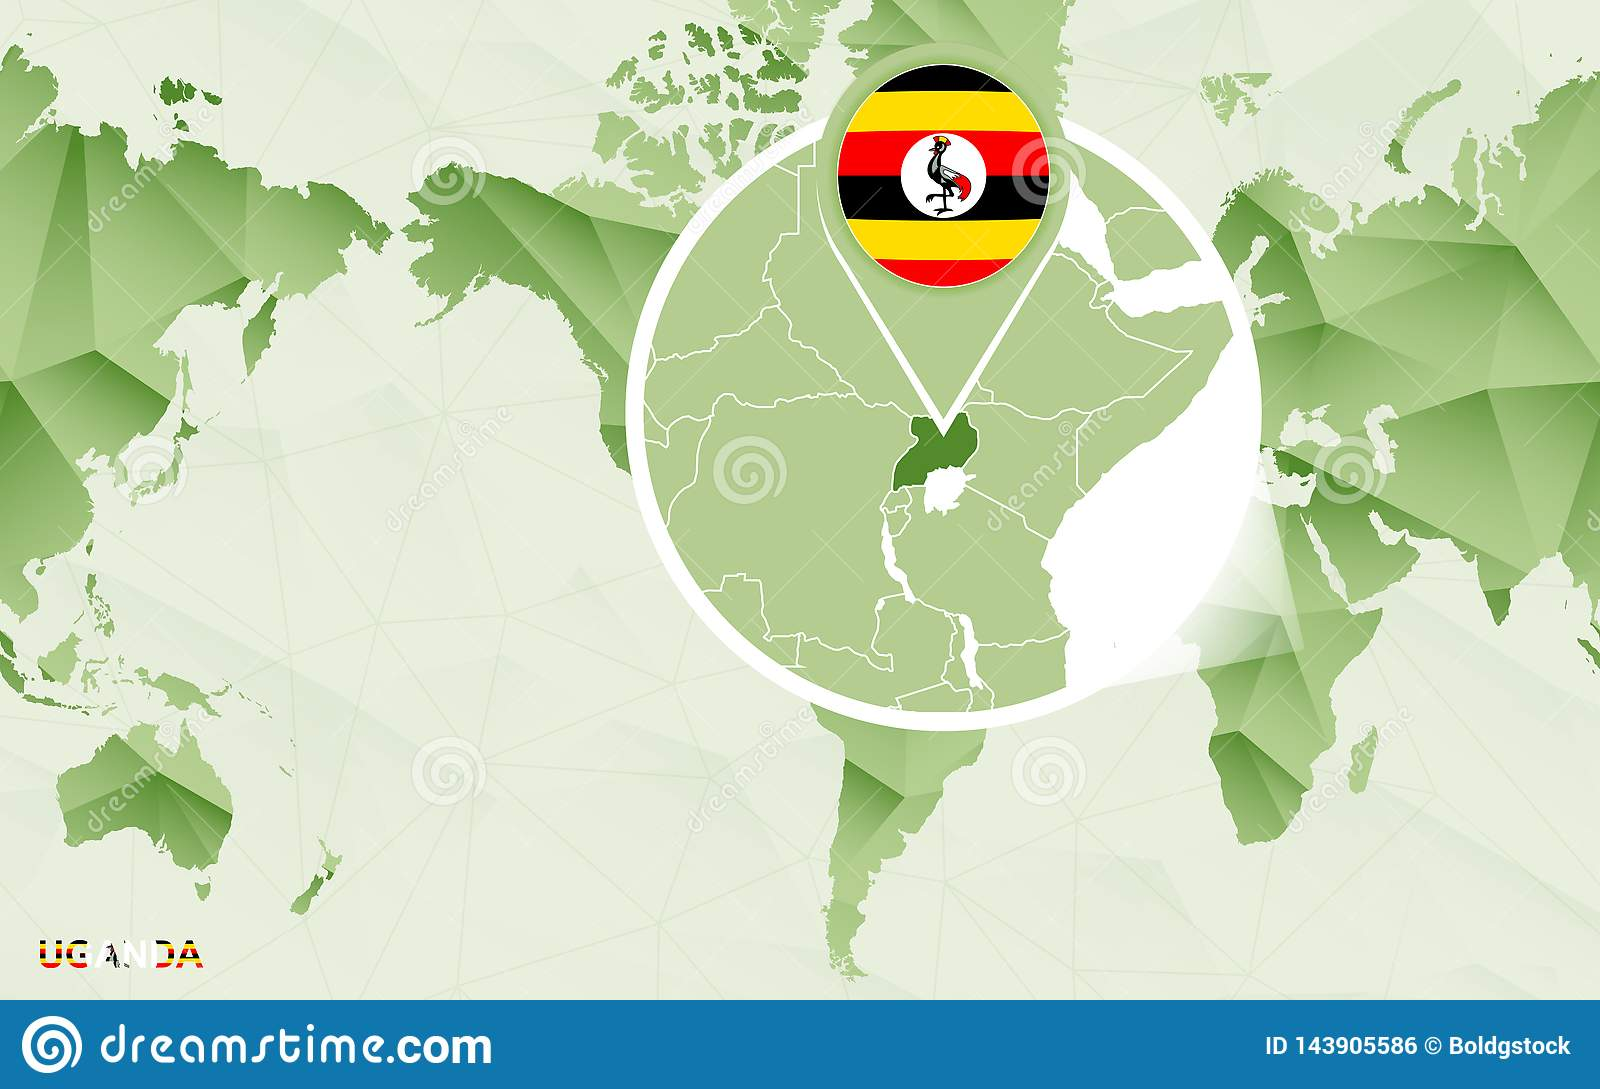 America Centric World Map With Magnified Uganda Map Stock ...